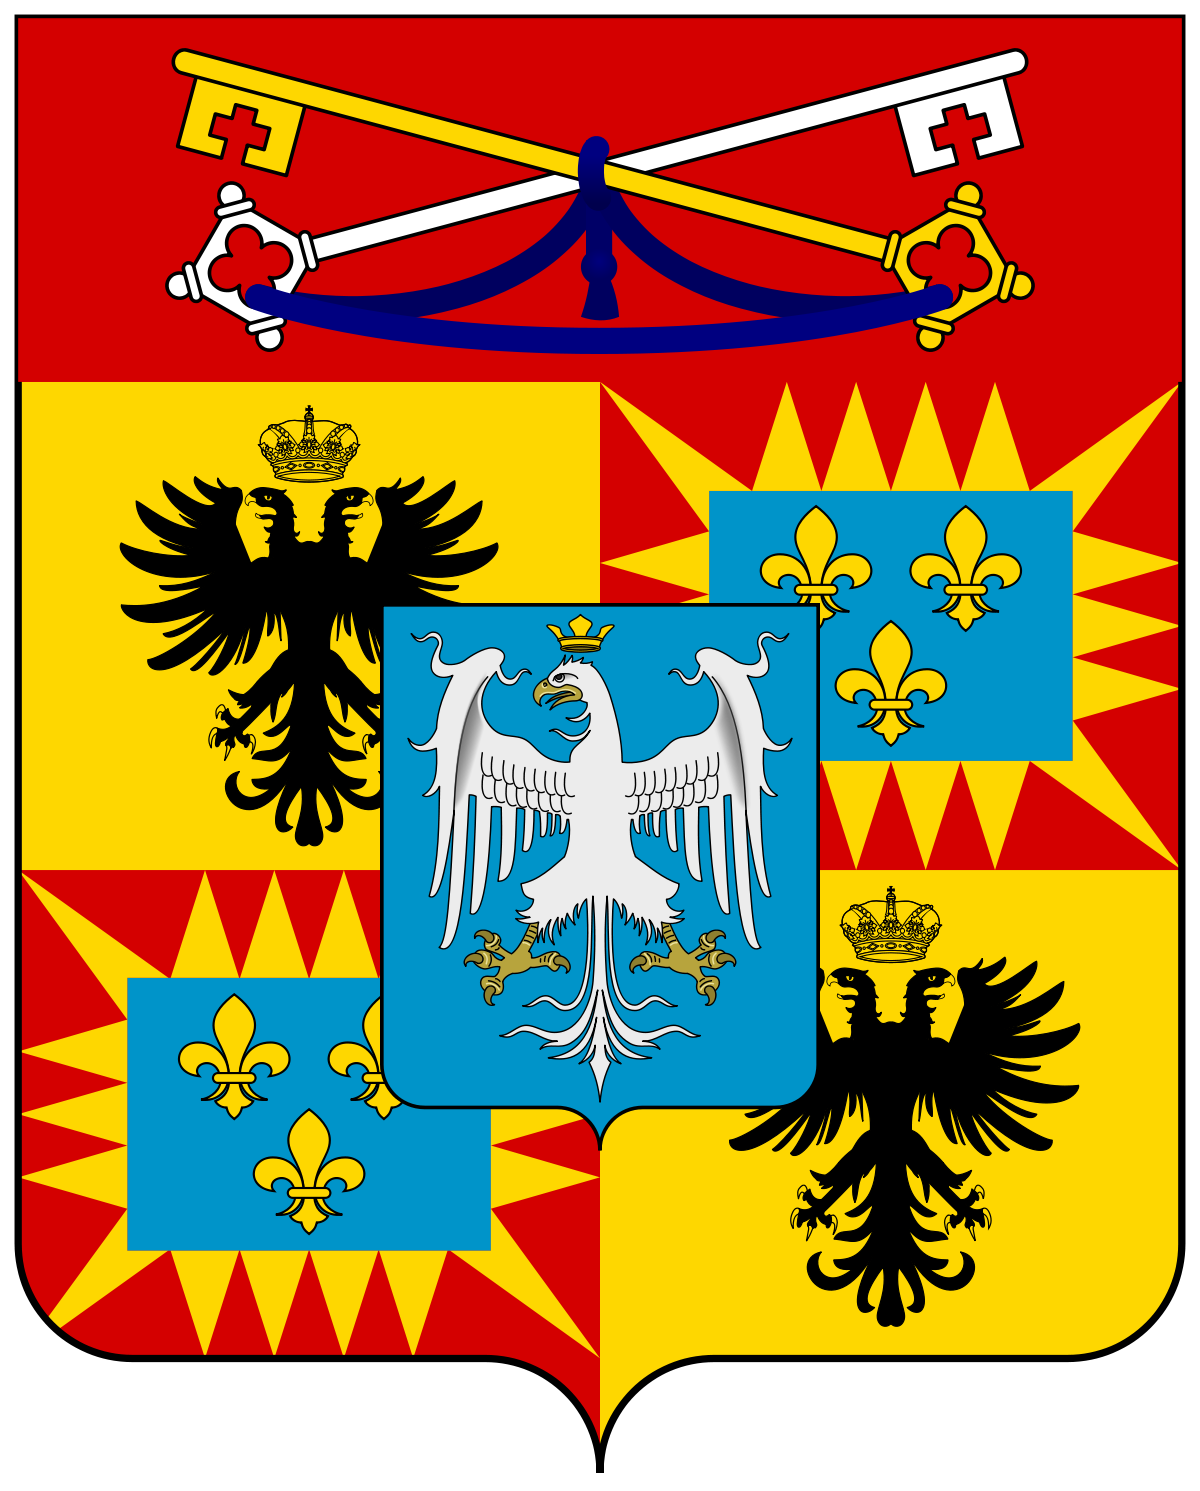 House Of Este Png - File:Coat of arms of the House of Este (1471).svg - Wikimedia Commons